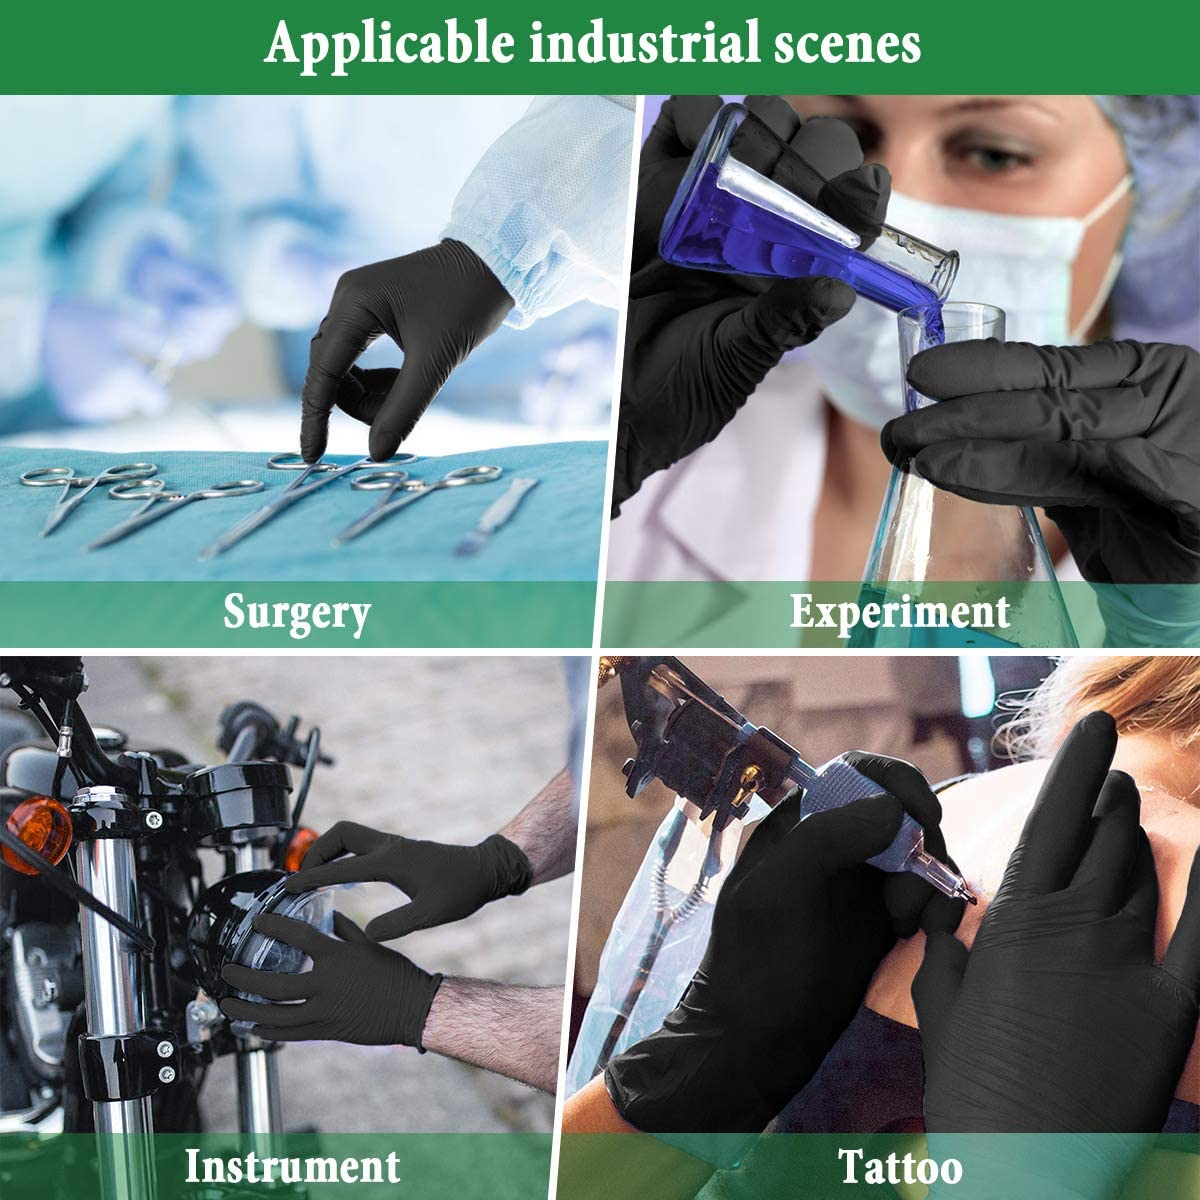 Black L Latex /& Powder Free Allergy Free Extra-Sensitive Gloves Smooth Gloves Cooking Cleaning Tattoo Mechanic Crafting Painting Boxed x100 Camfosy Nitrile Disposable Gloves Size S - XL